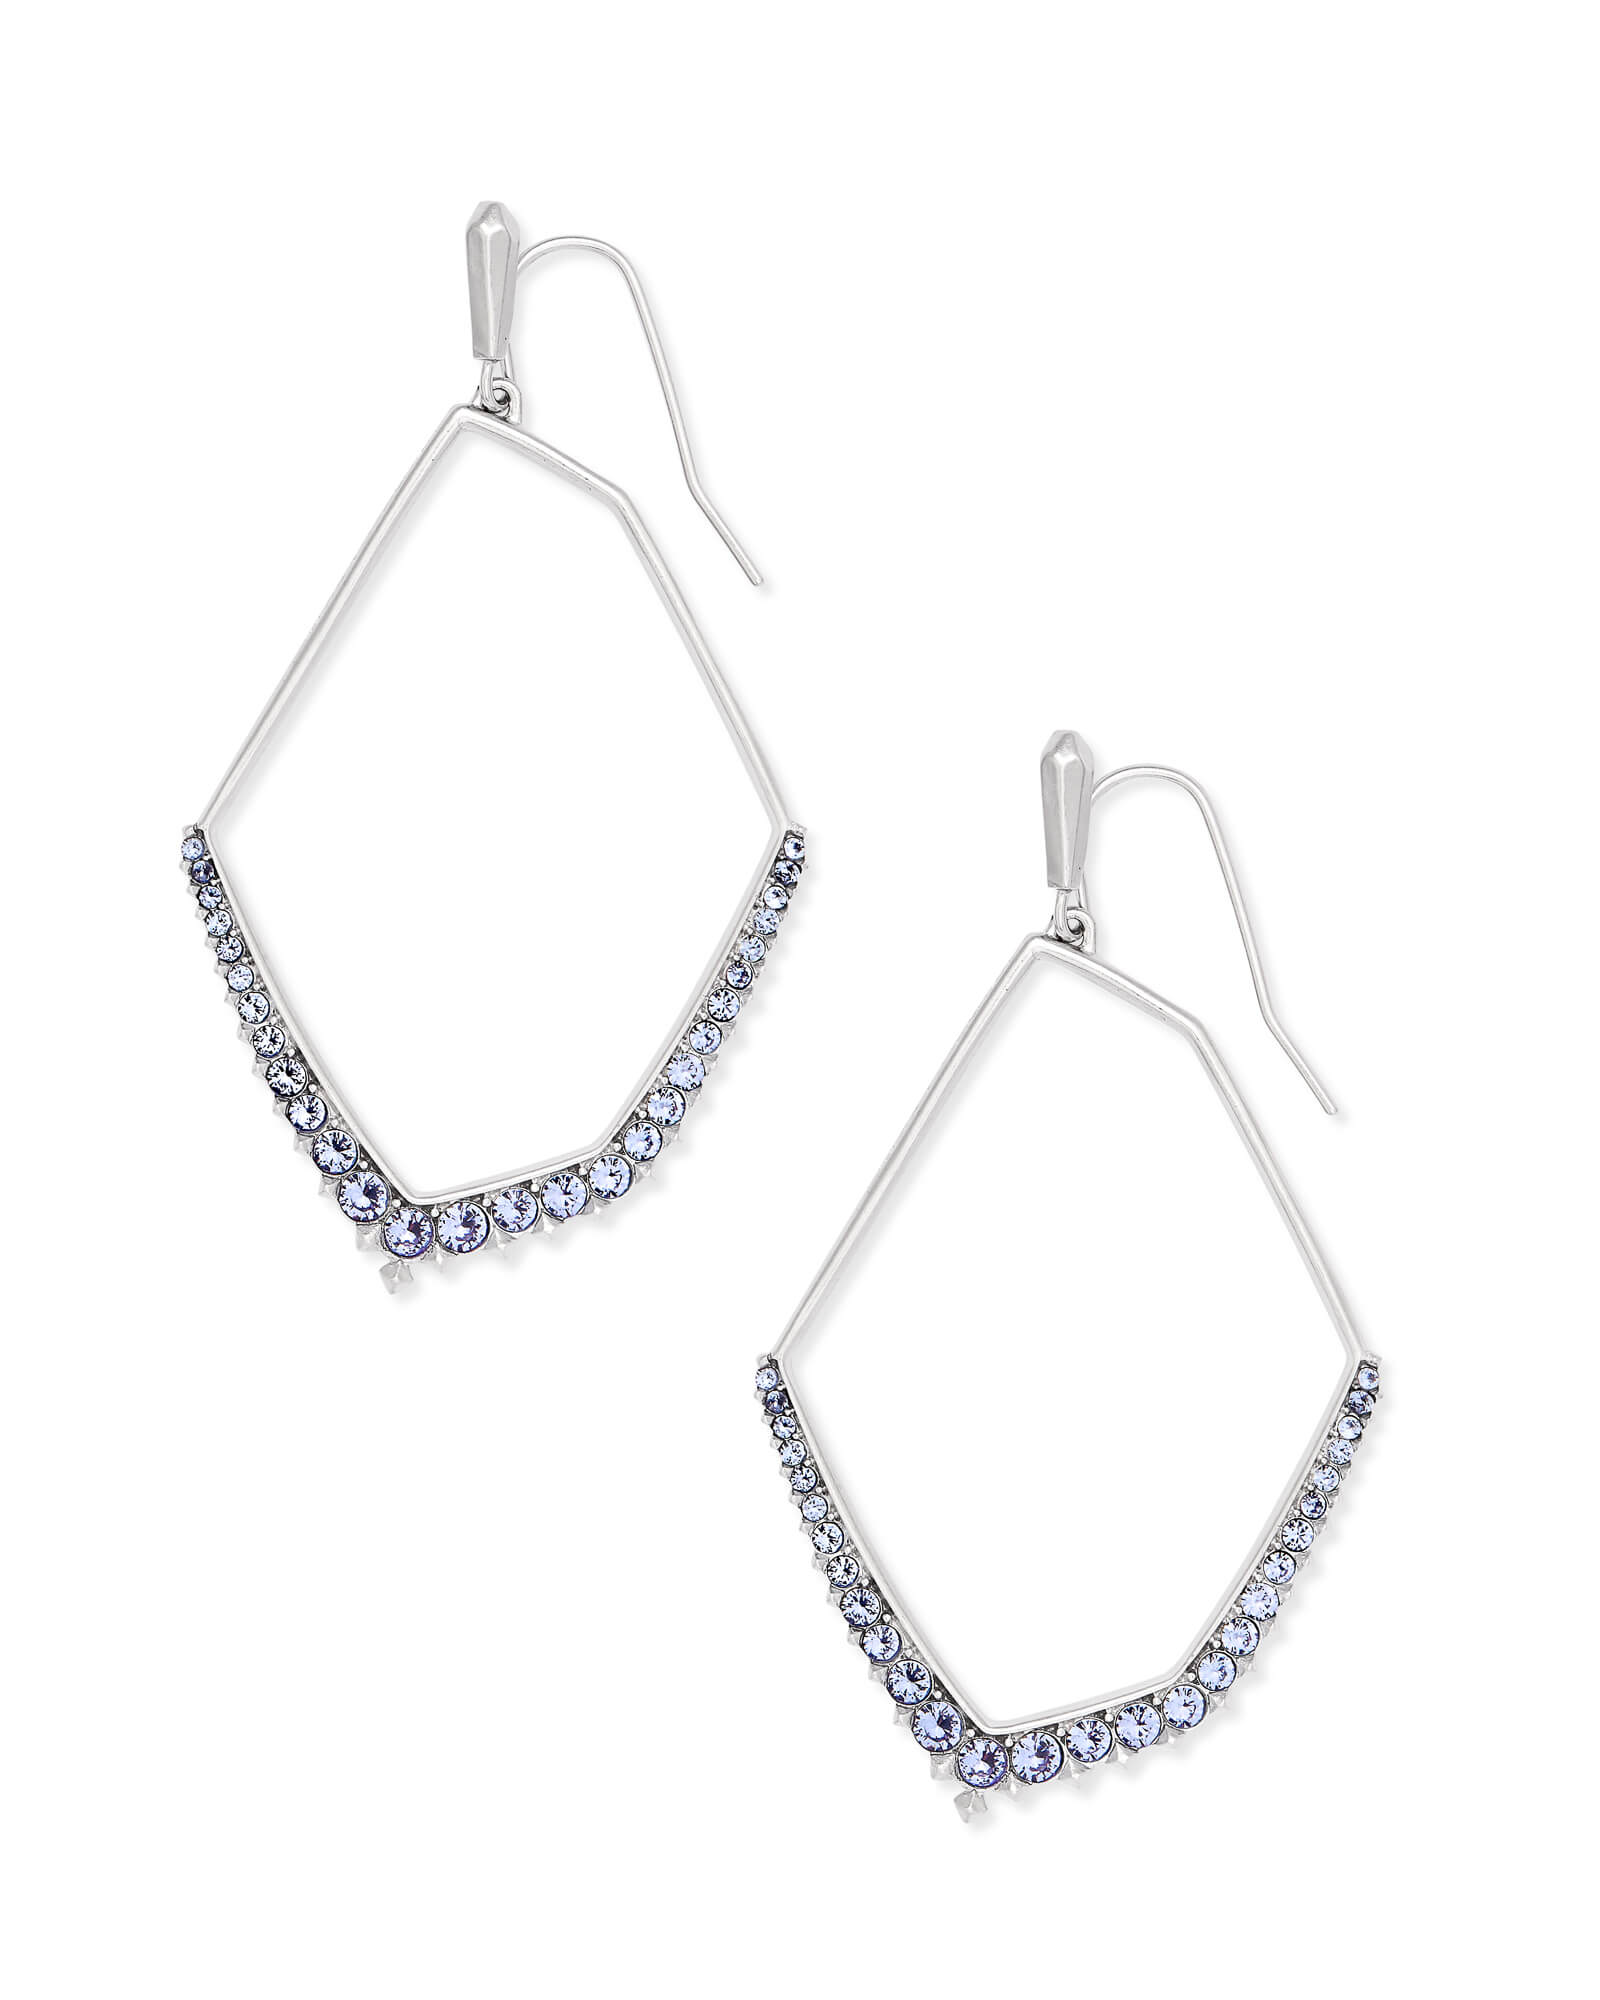 Nell Silver Statement Earrings in Lilac Crystal